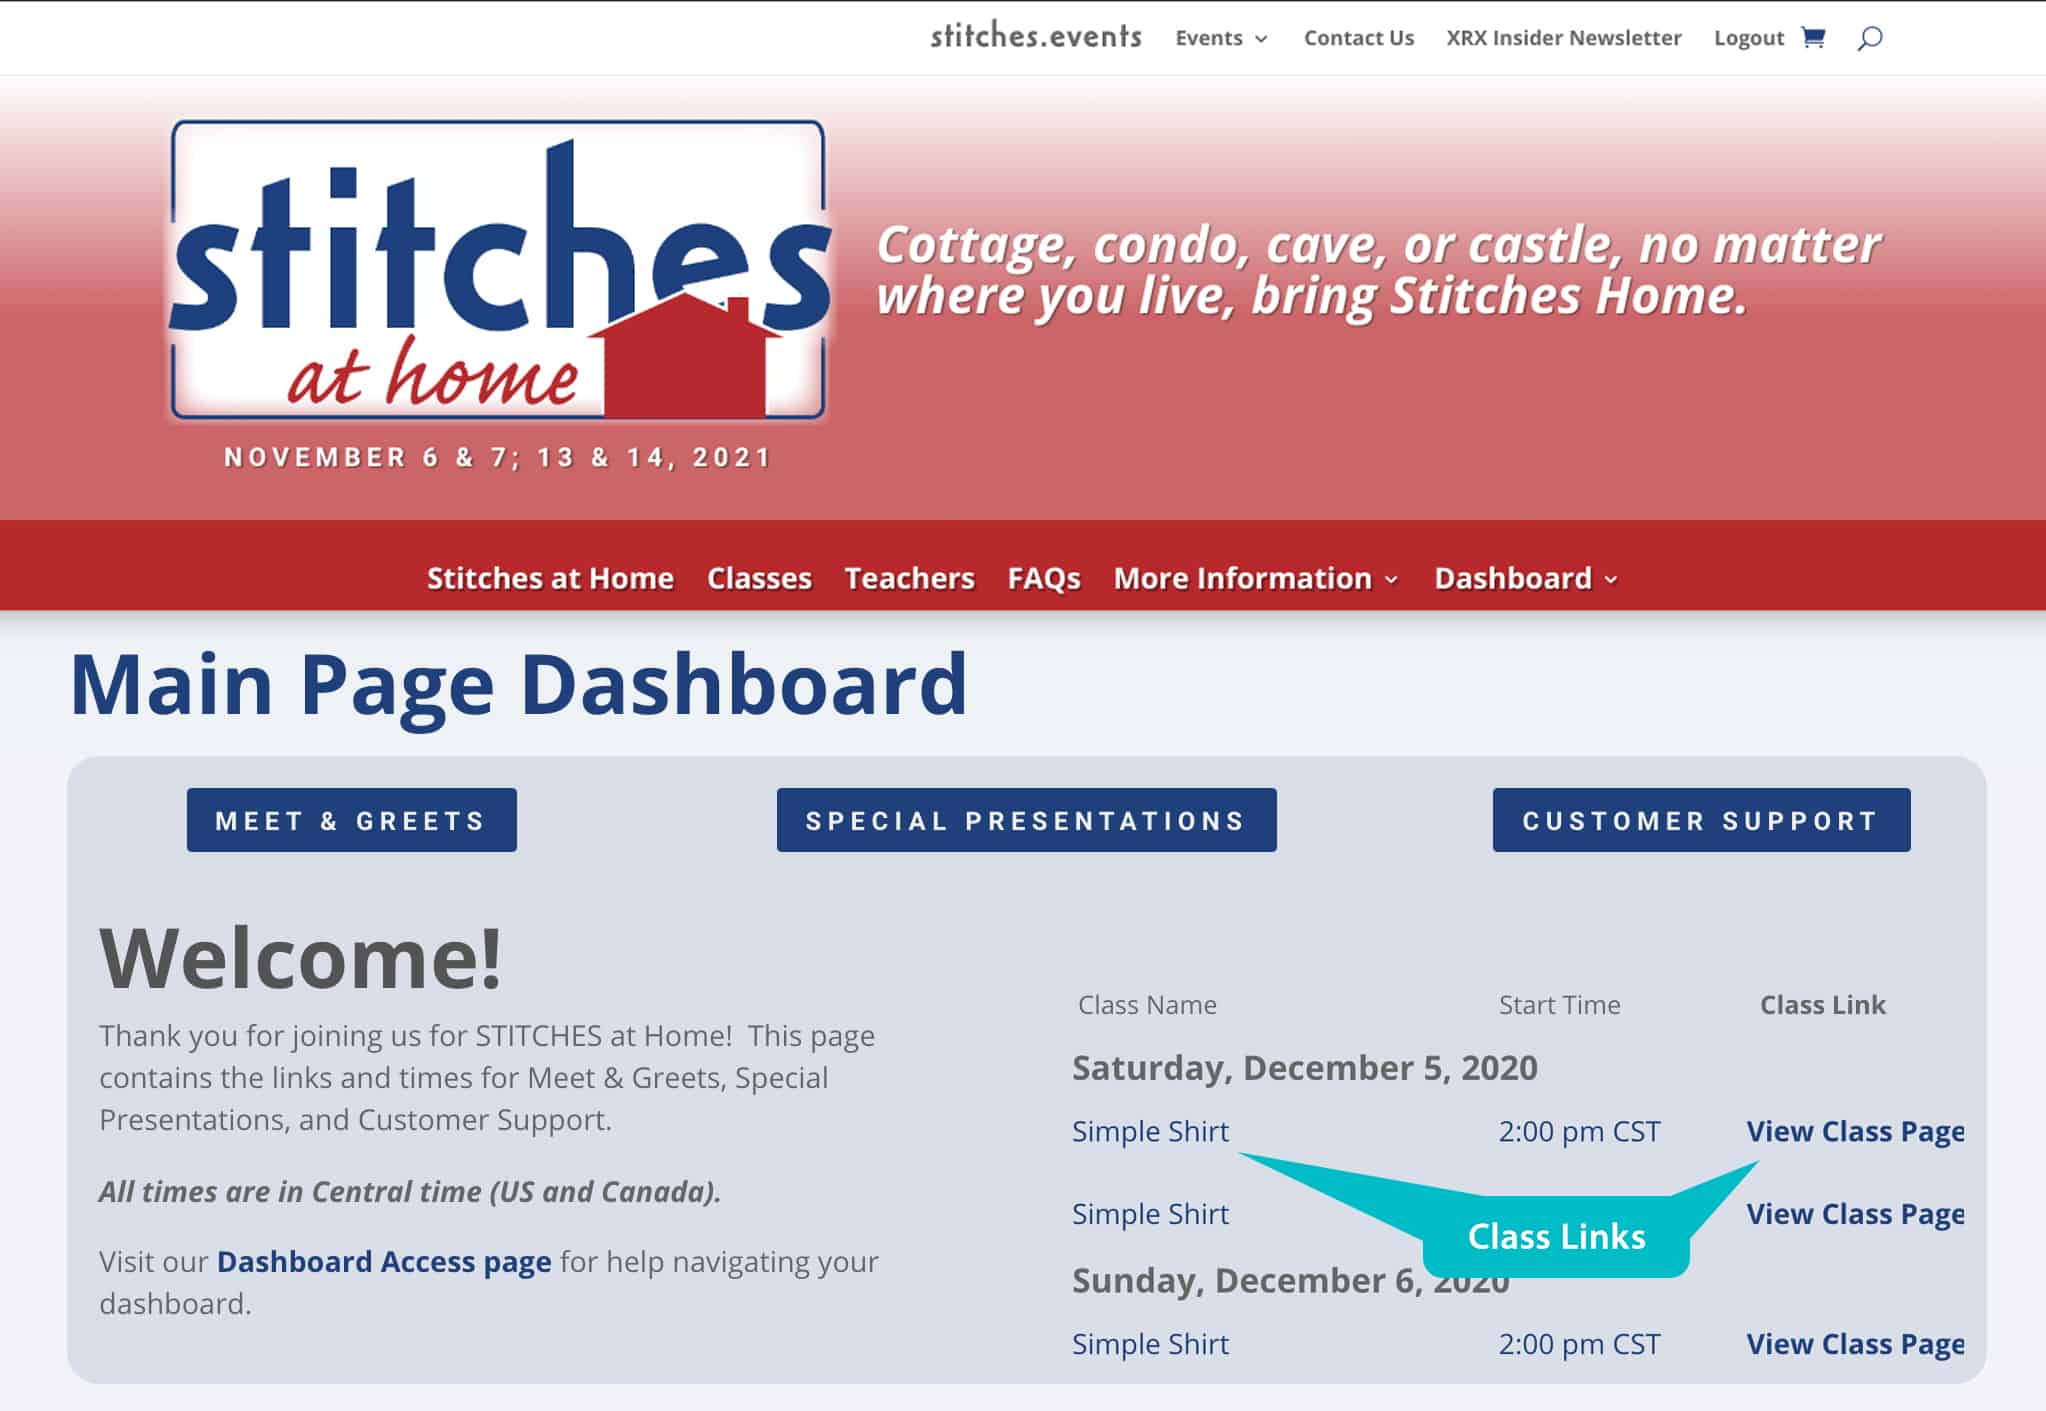 A screenshot showing the Student dashboard with class links.